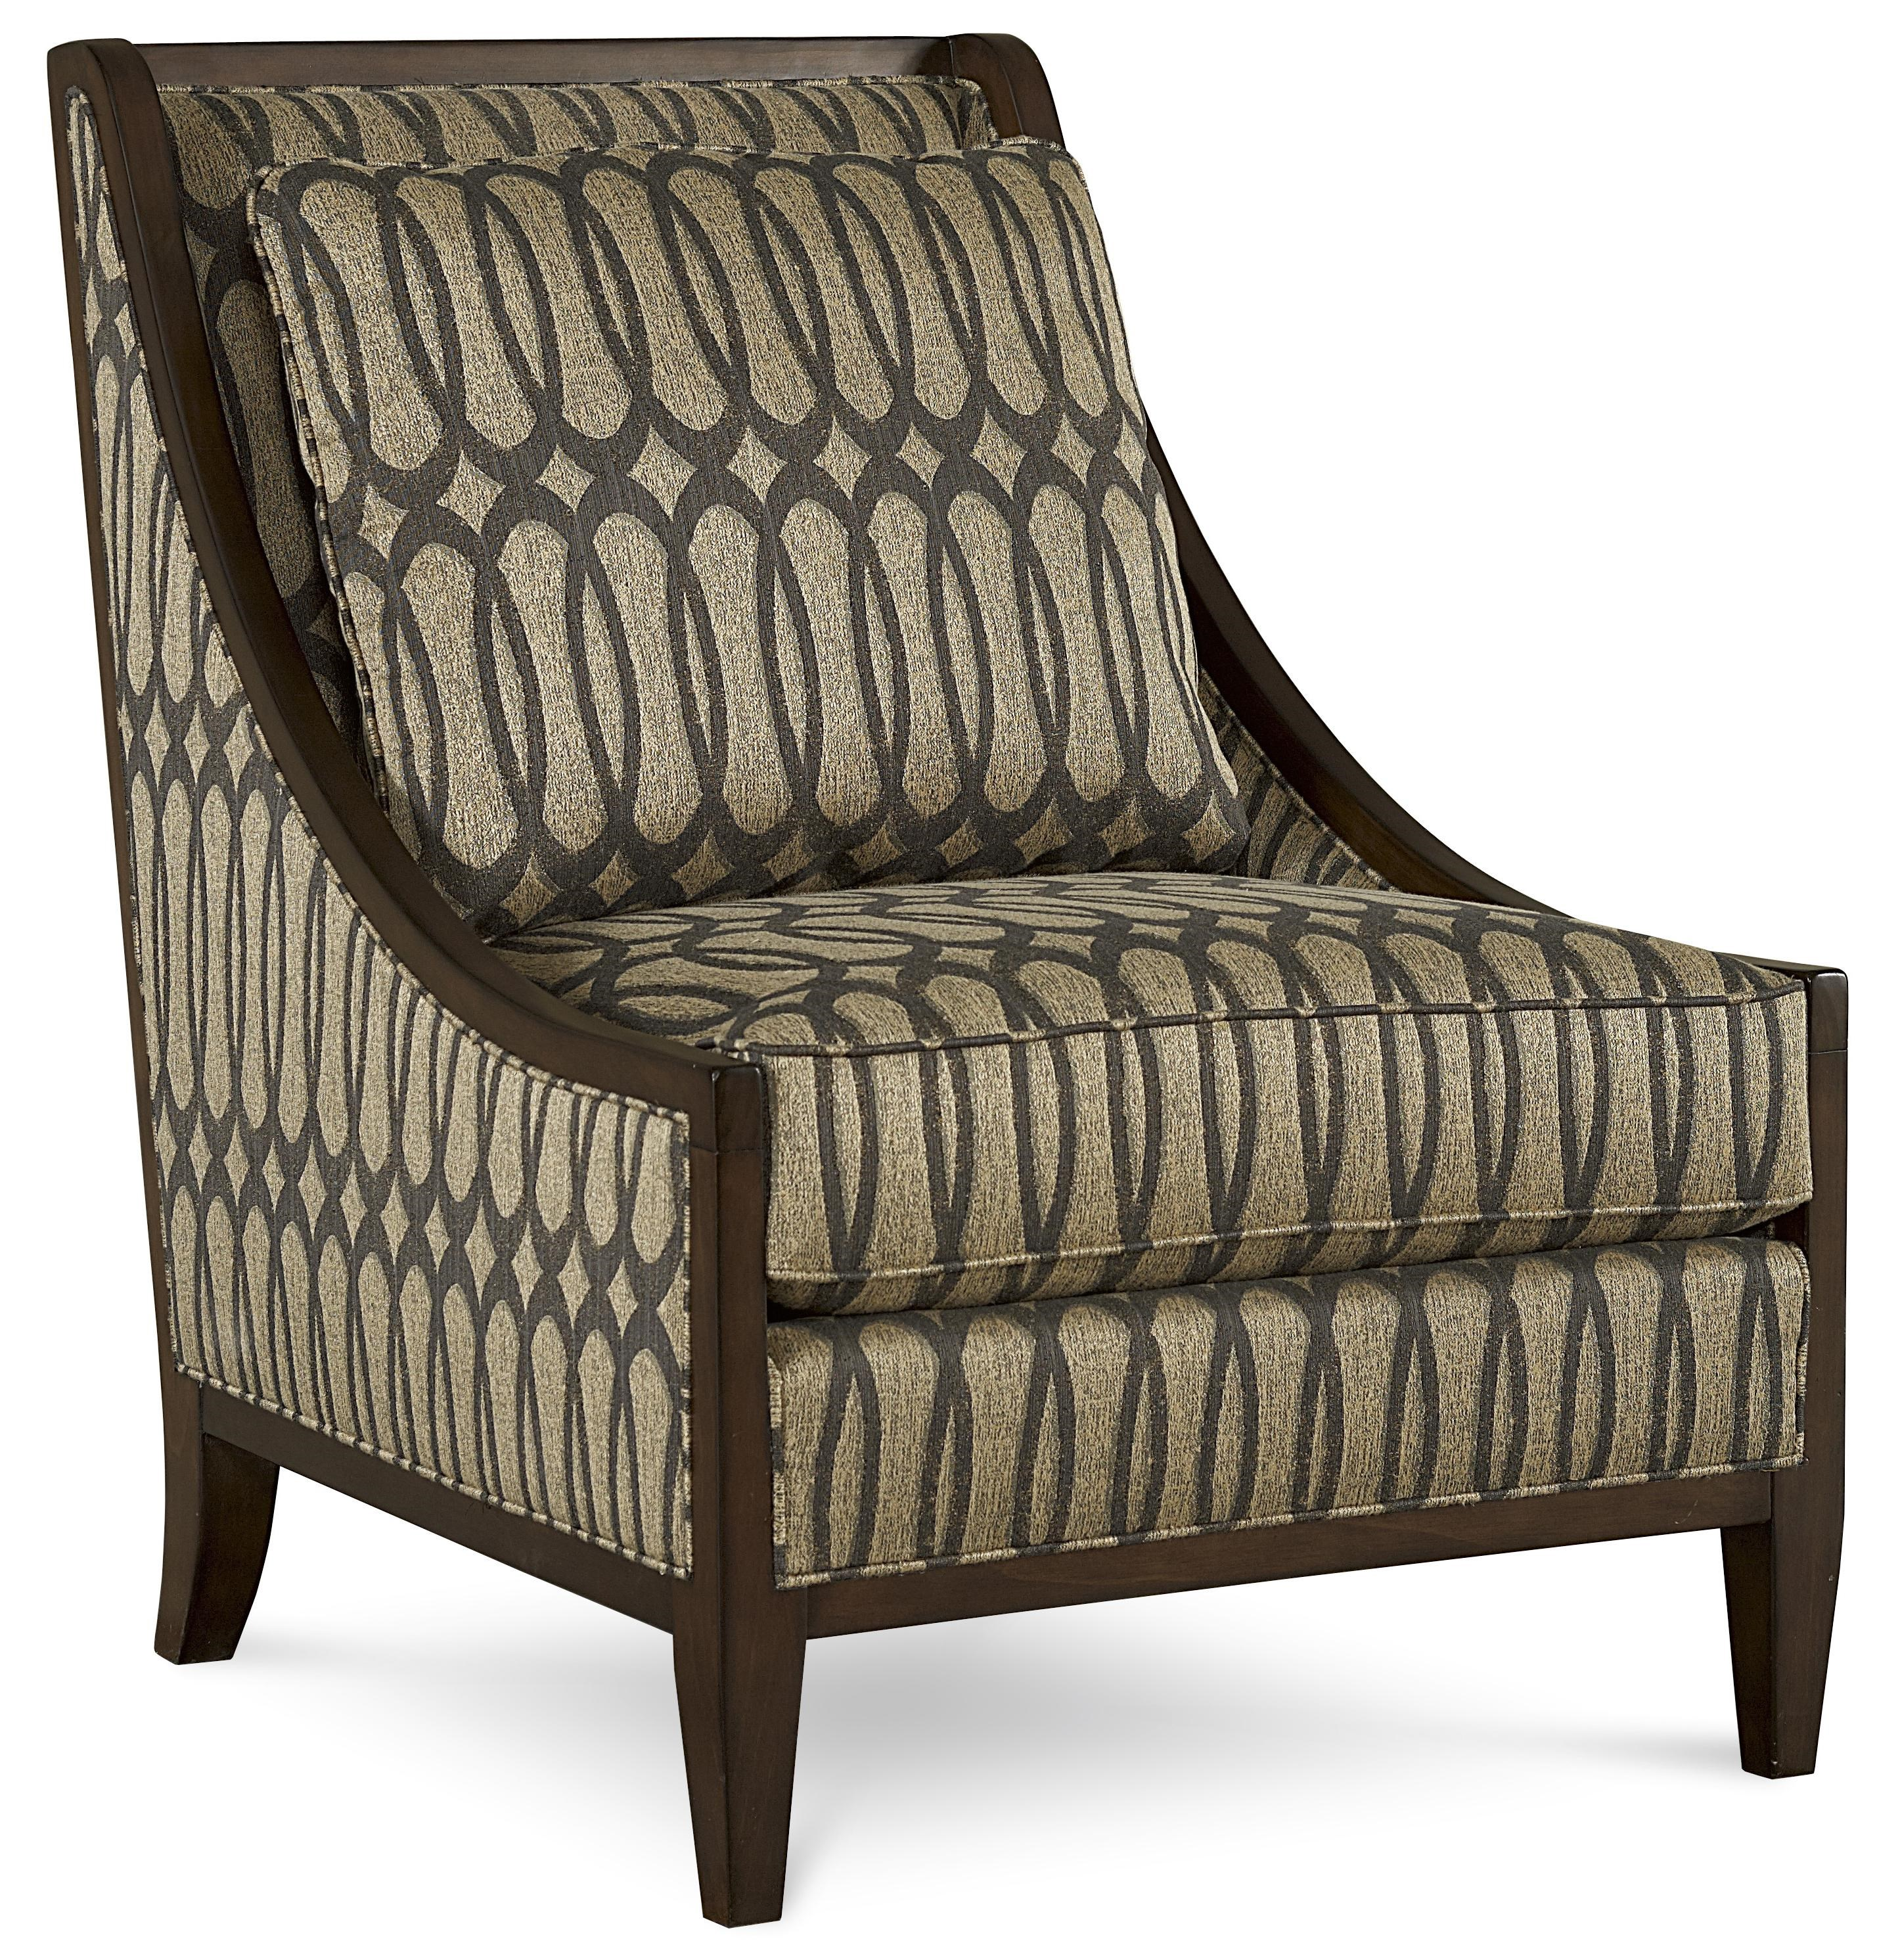 Markor Furniture Harper   Mineral Transitional Exposed Wood Frame Accent  Chair In Ogee Fabric